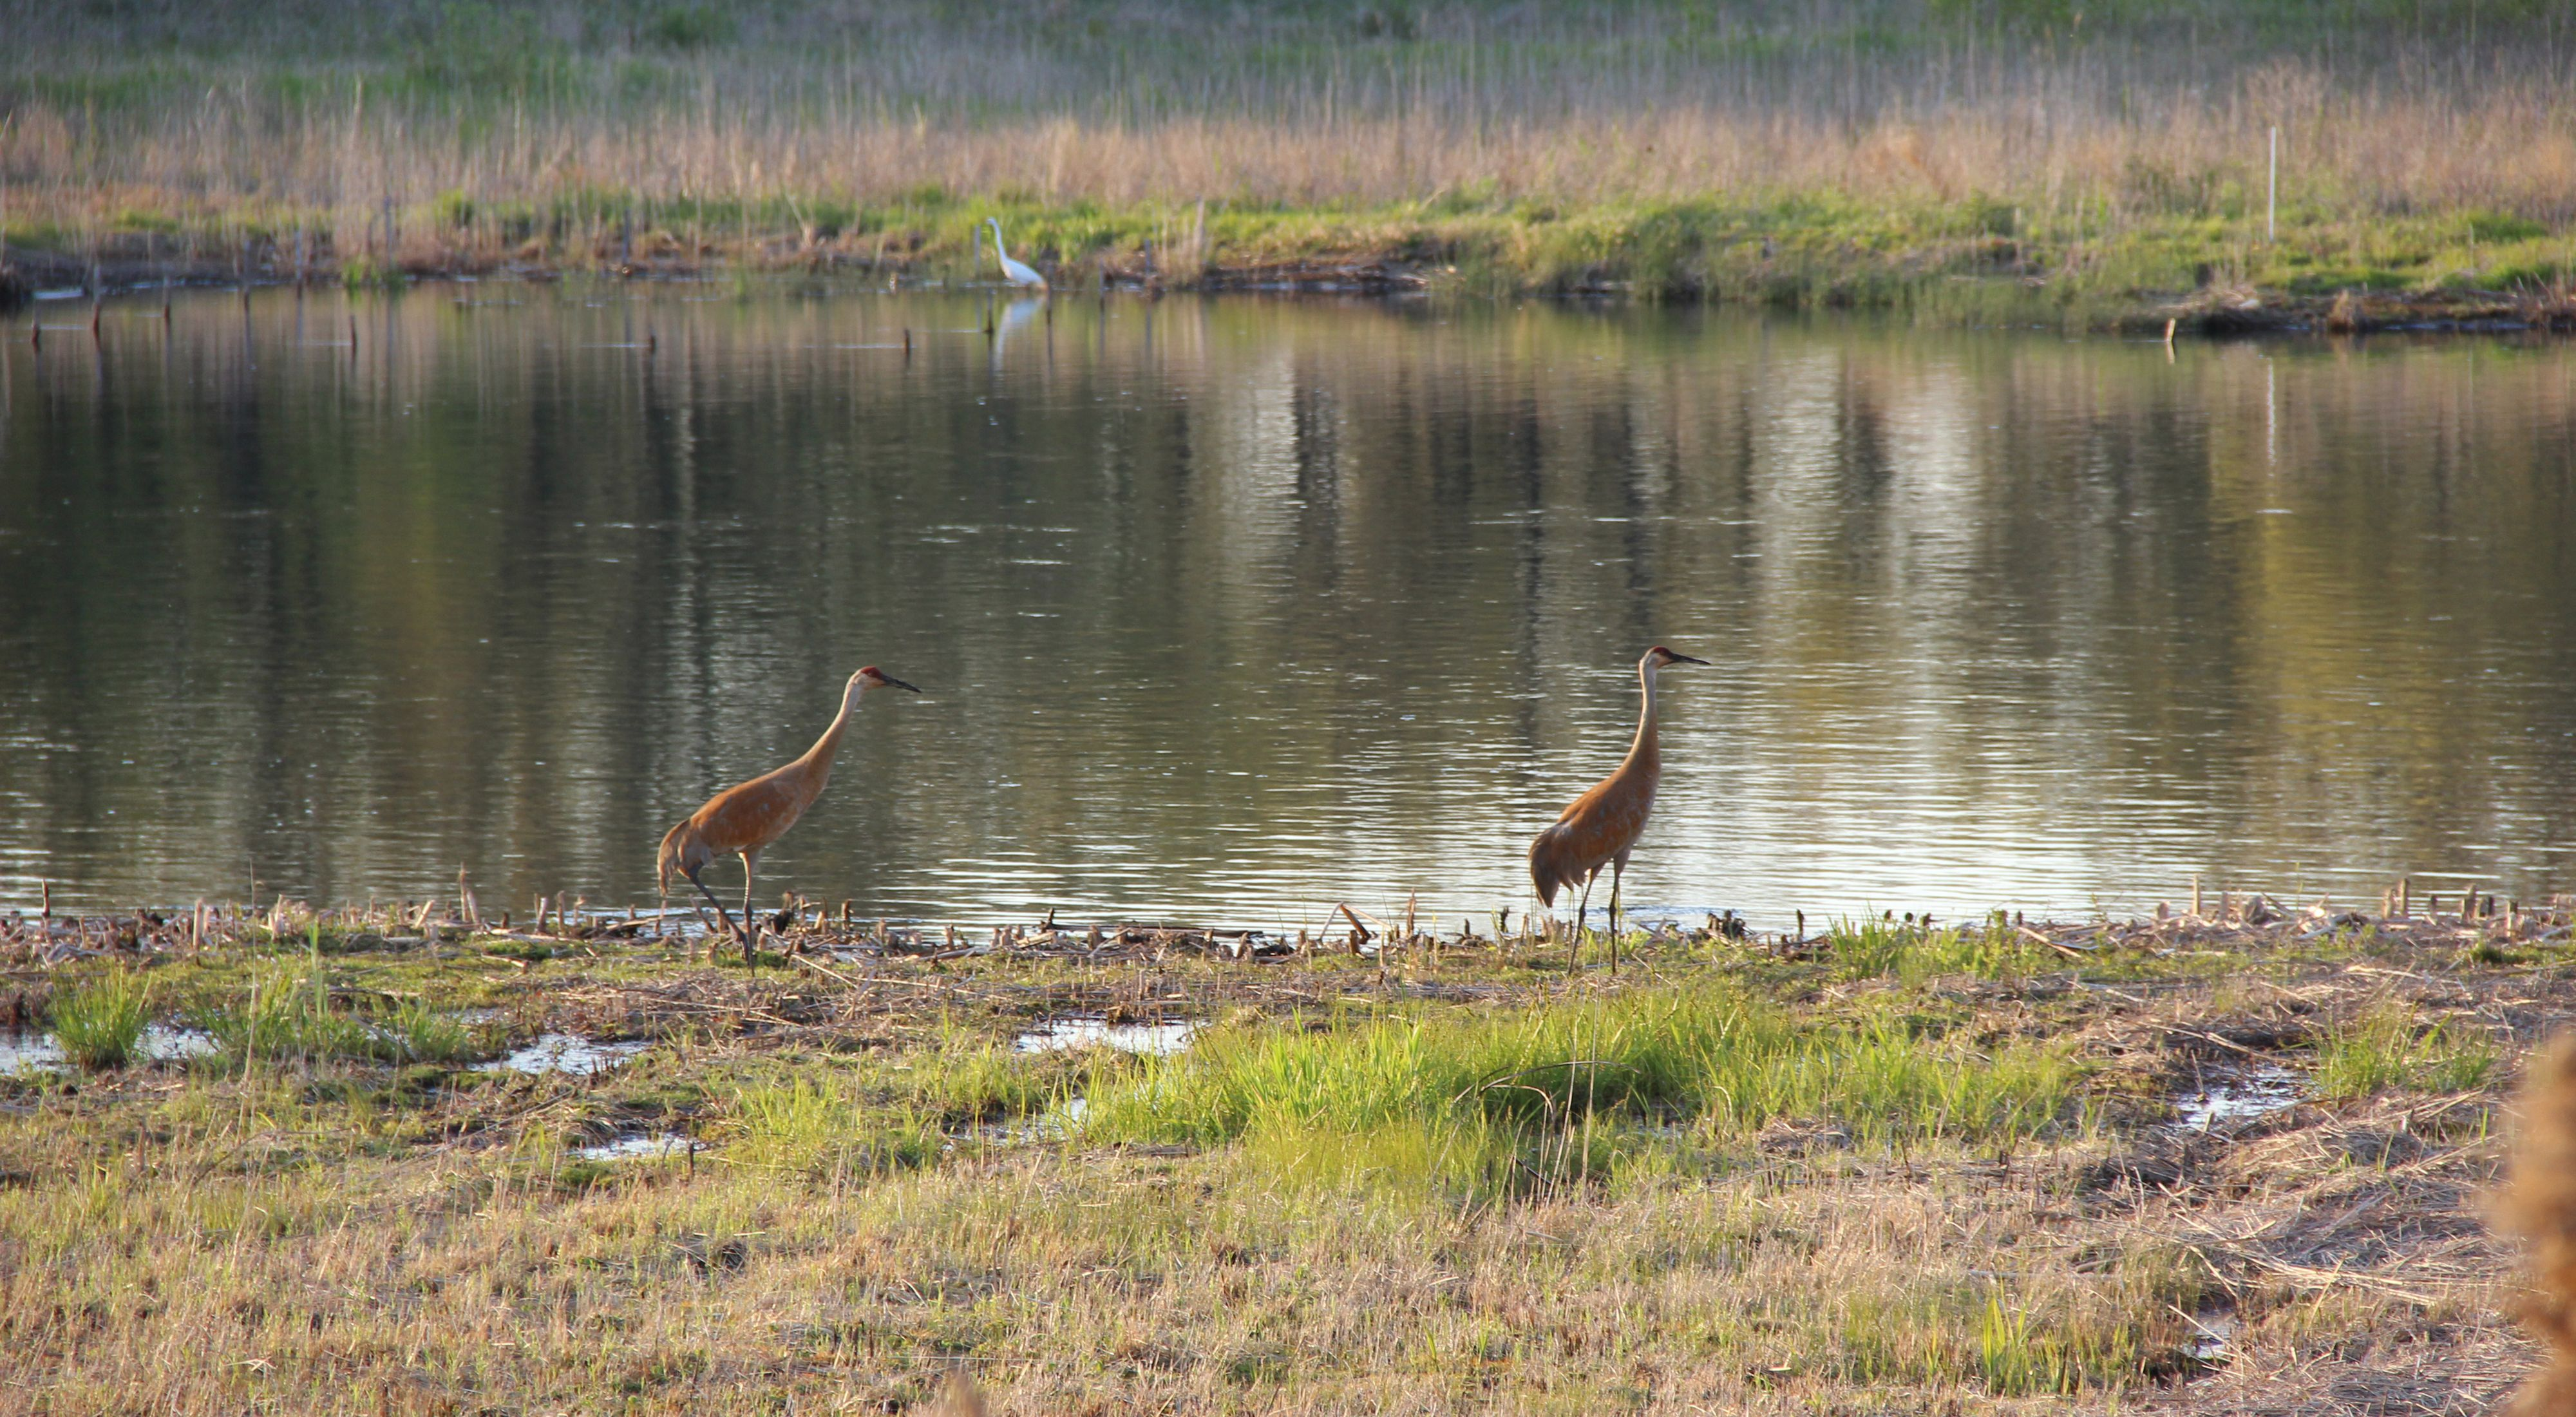 Tall wading birds along the banks of a river with low vegetation.